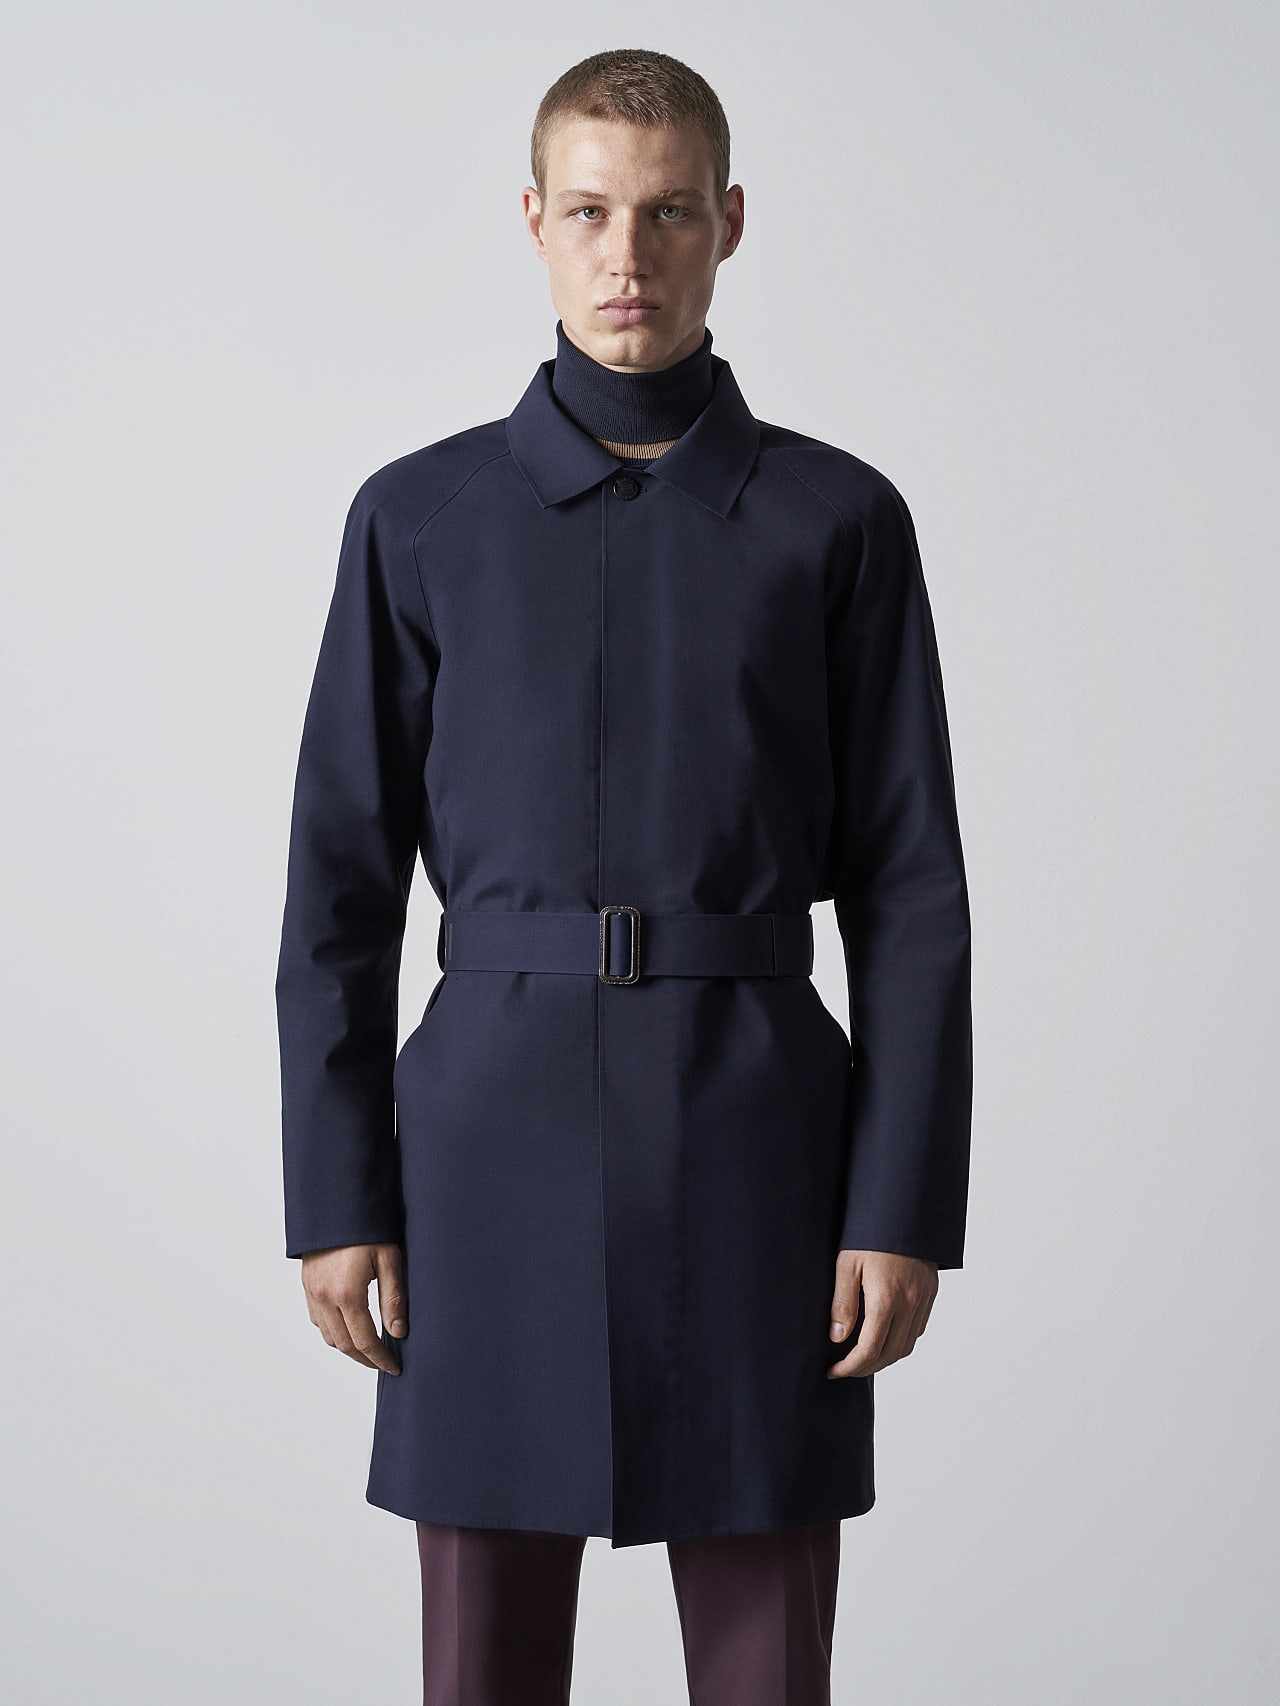 OMANA V1.Y5.02 Packable and Waterproof Trench Coat navy Model shot Alpha Tauri